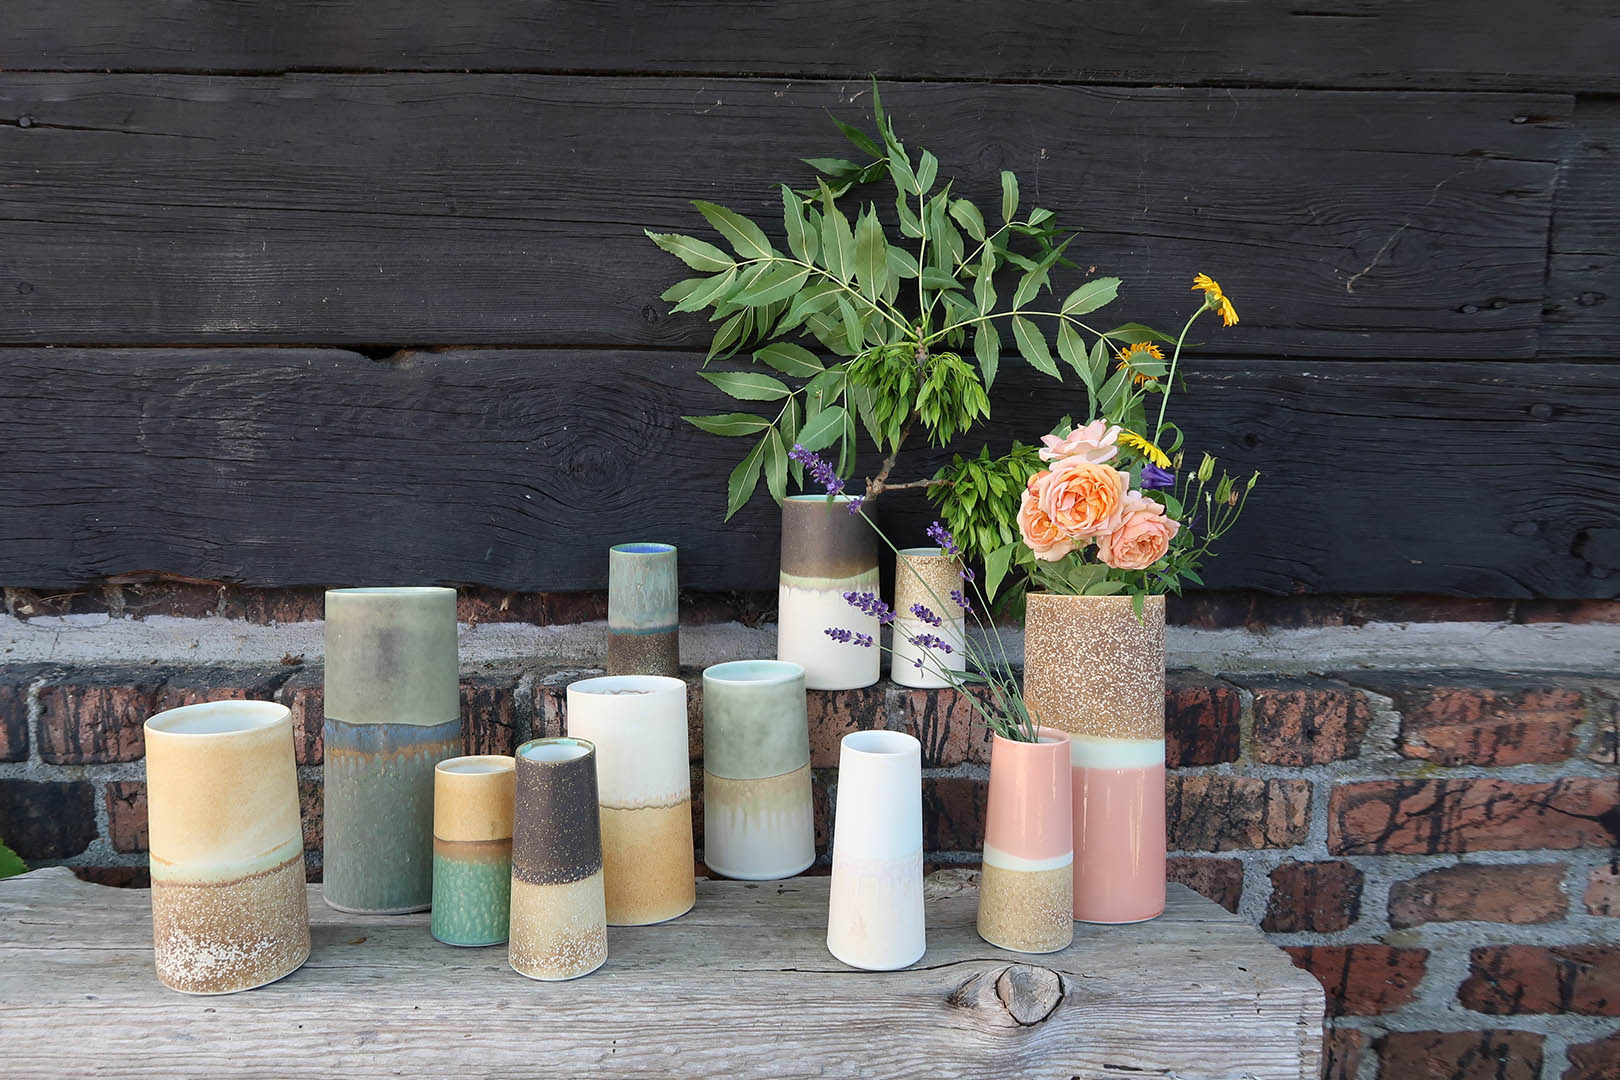 The Sustainable vases are made with leftover materials, and no two vases are the same, photo by WAUW Design